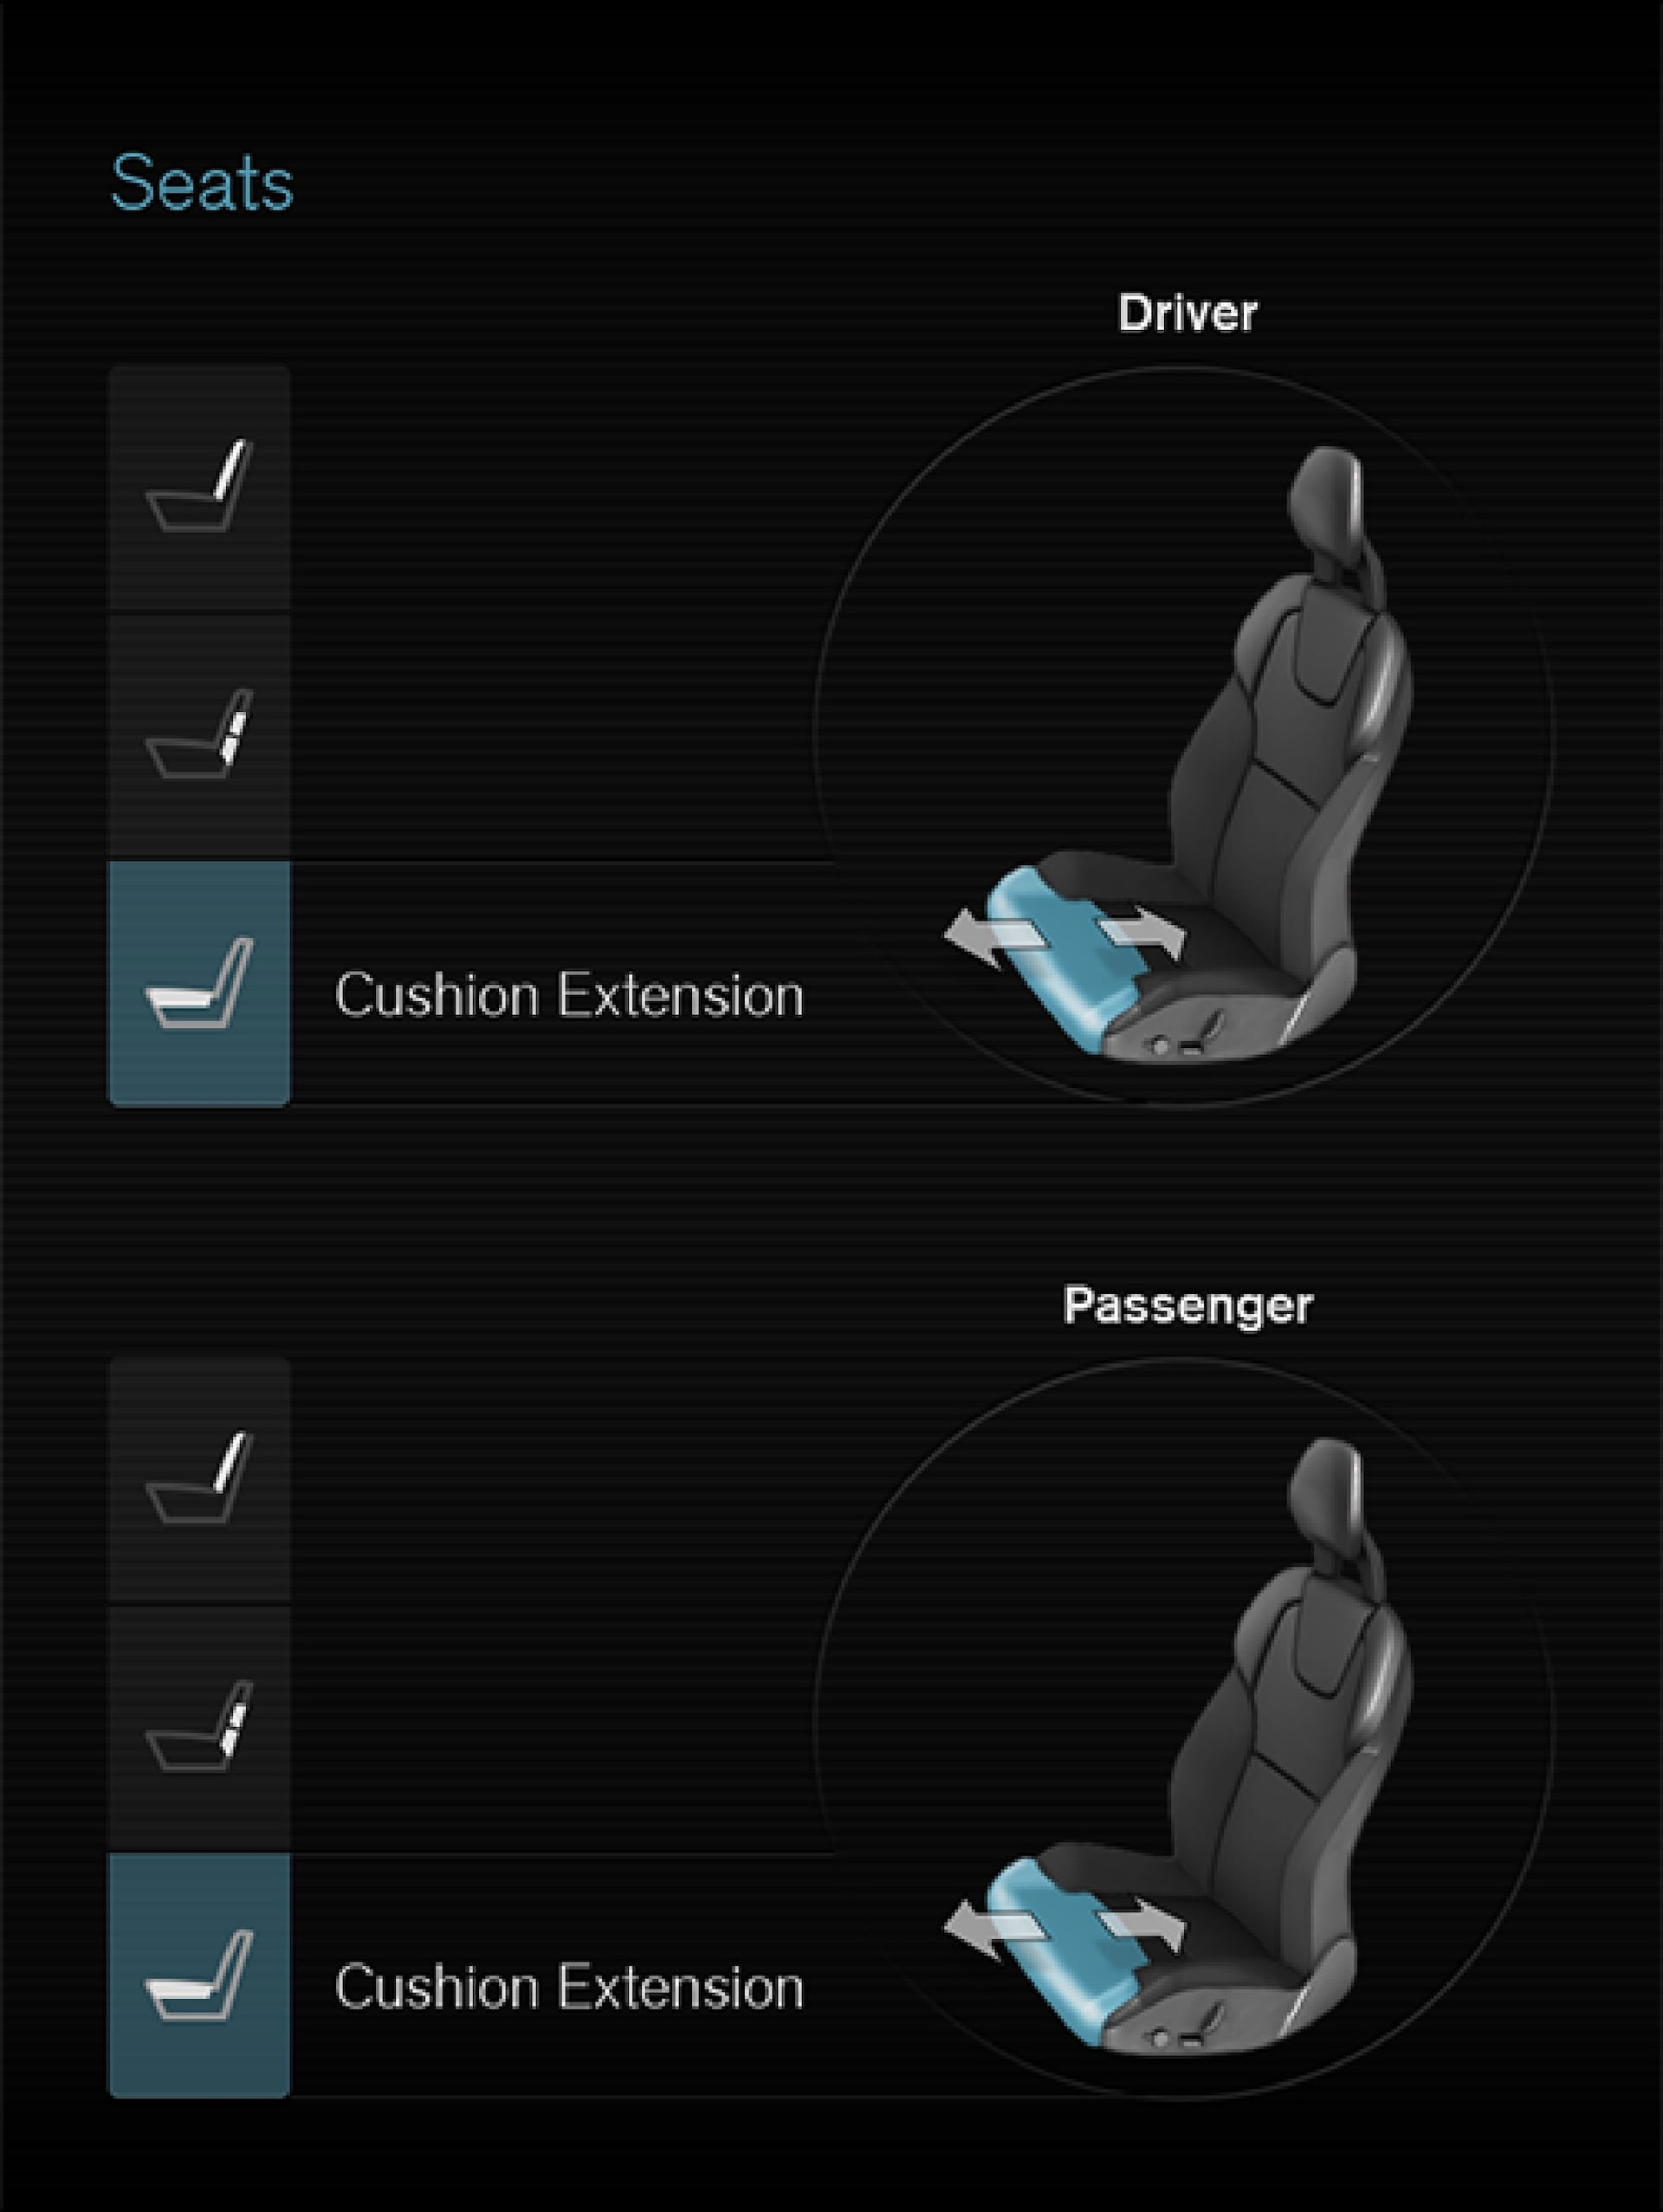 P5-1507-Seat function-Cushion extention